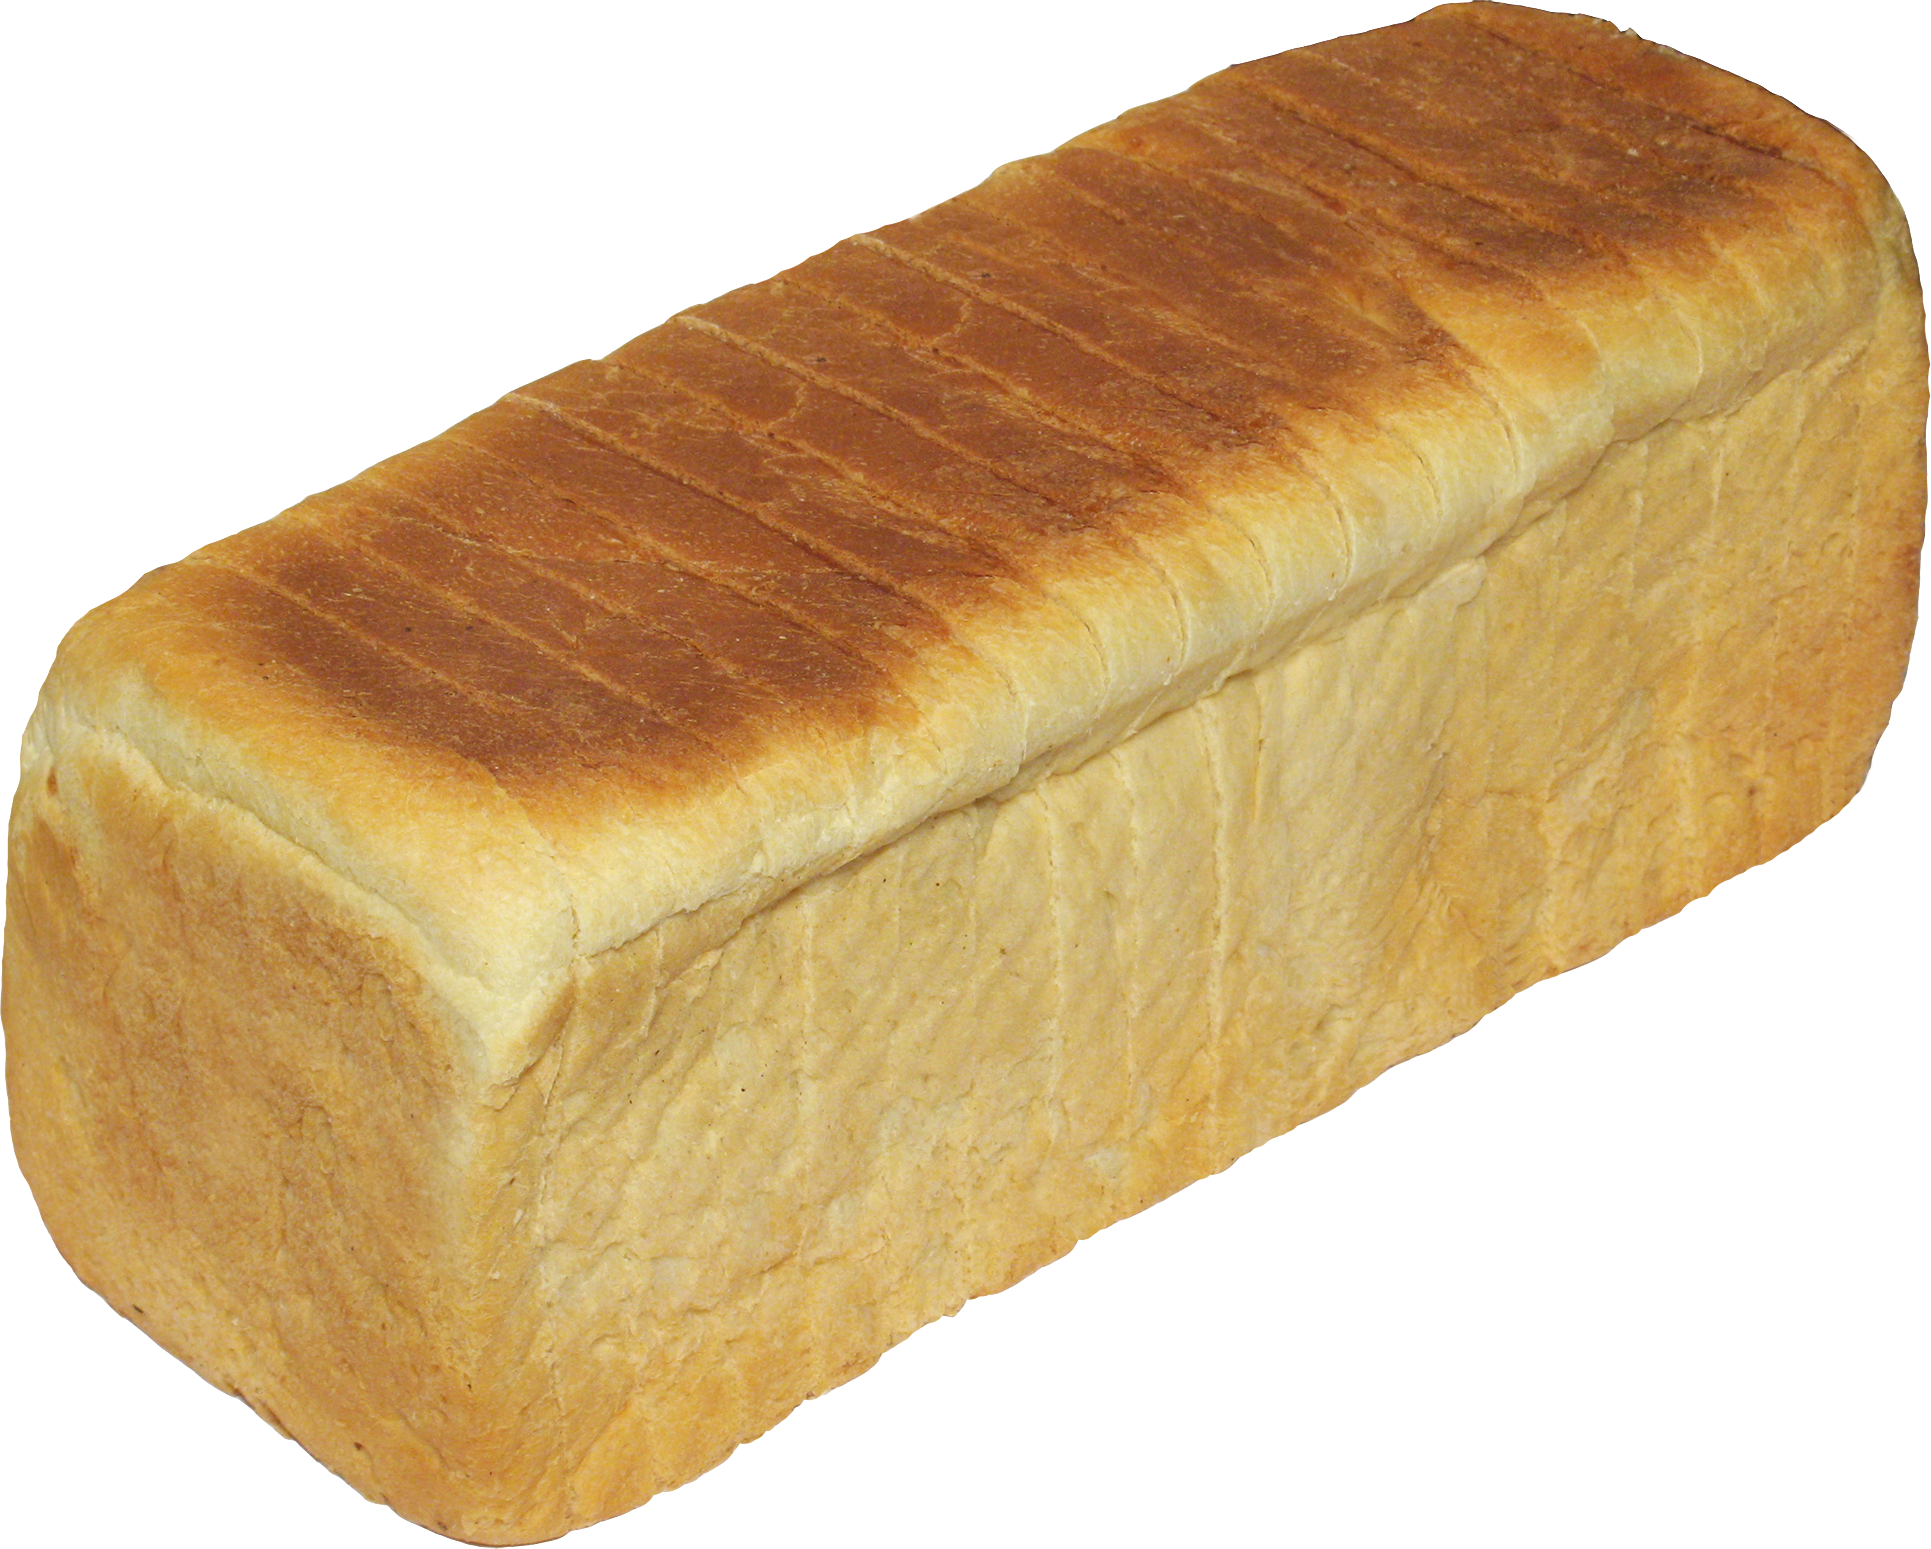 Image free download bun. Bread loaf png vector black and white download